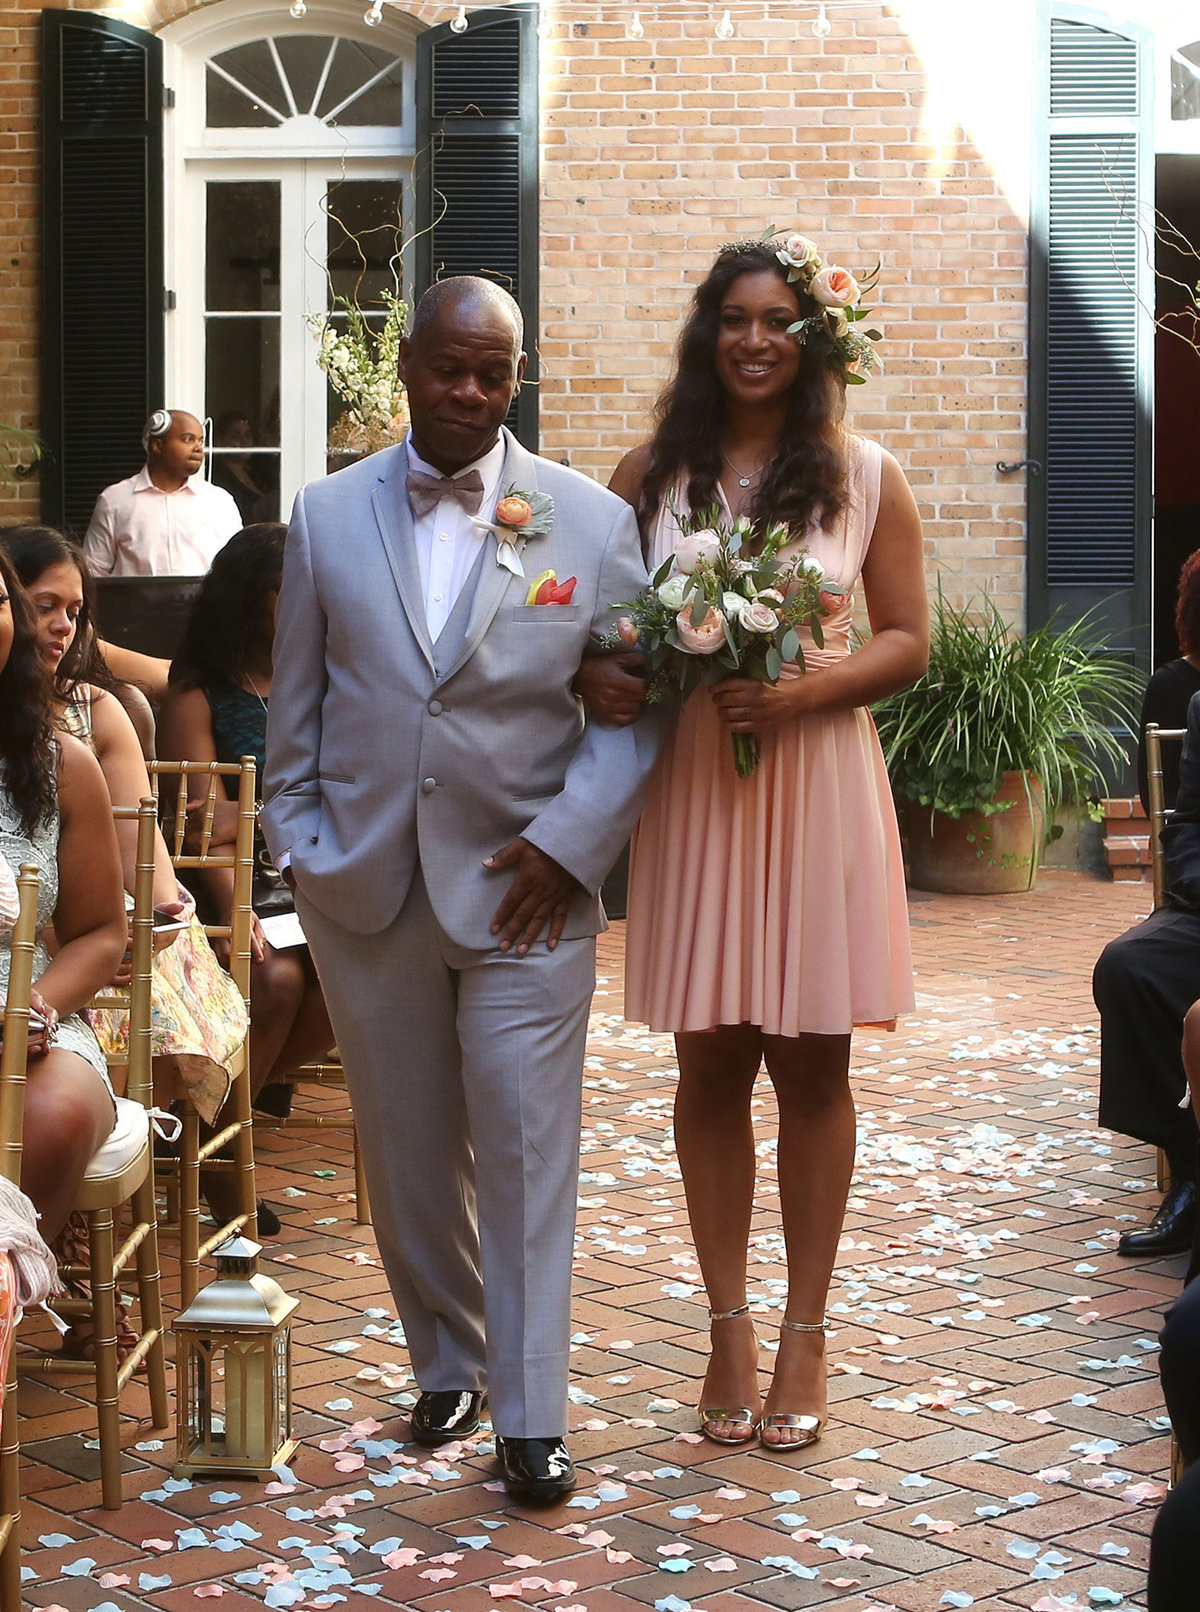 father of the groom walking bridesmaid down the aisle